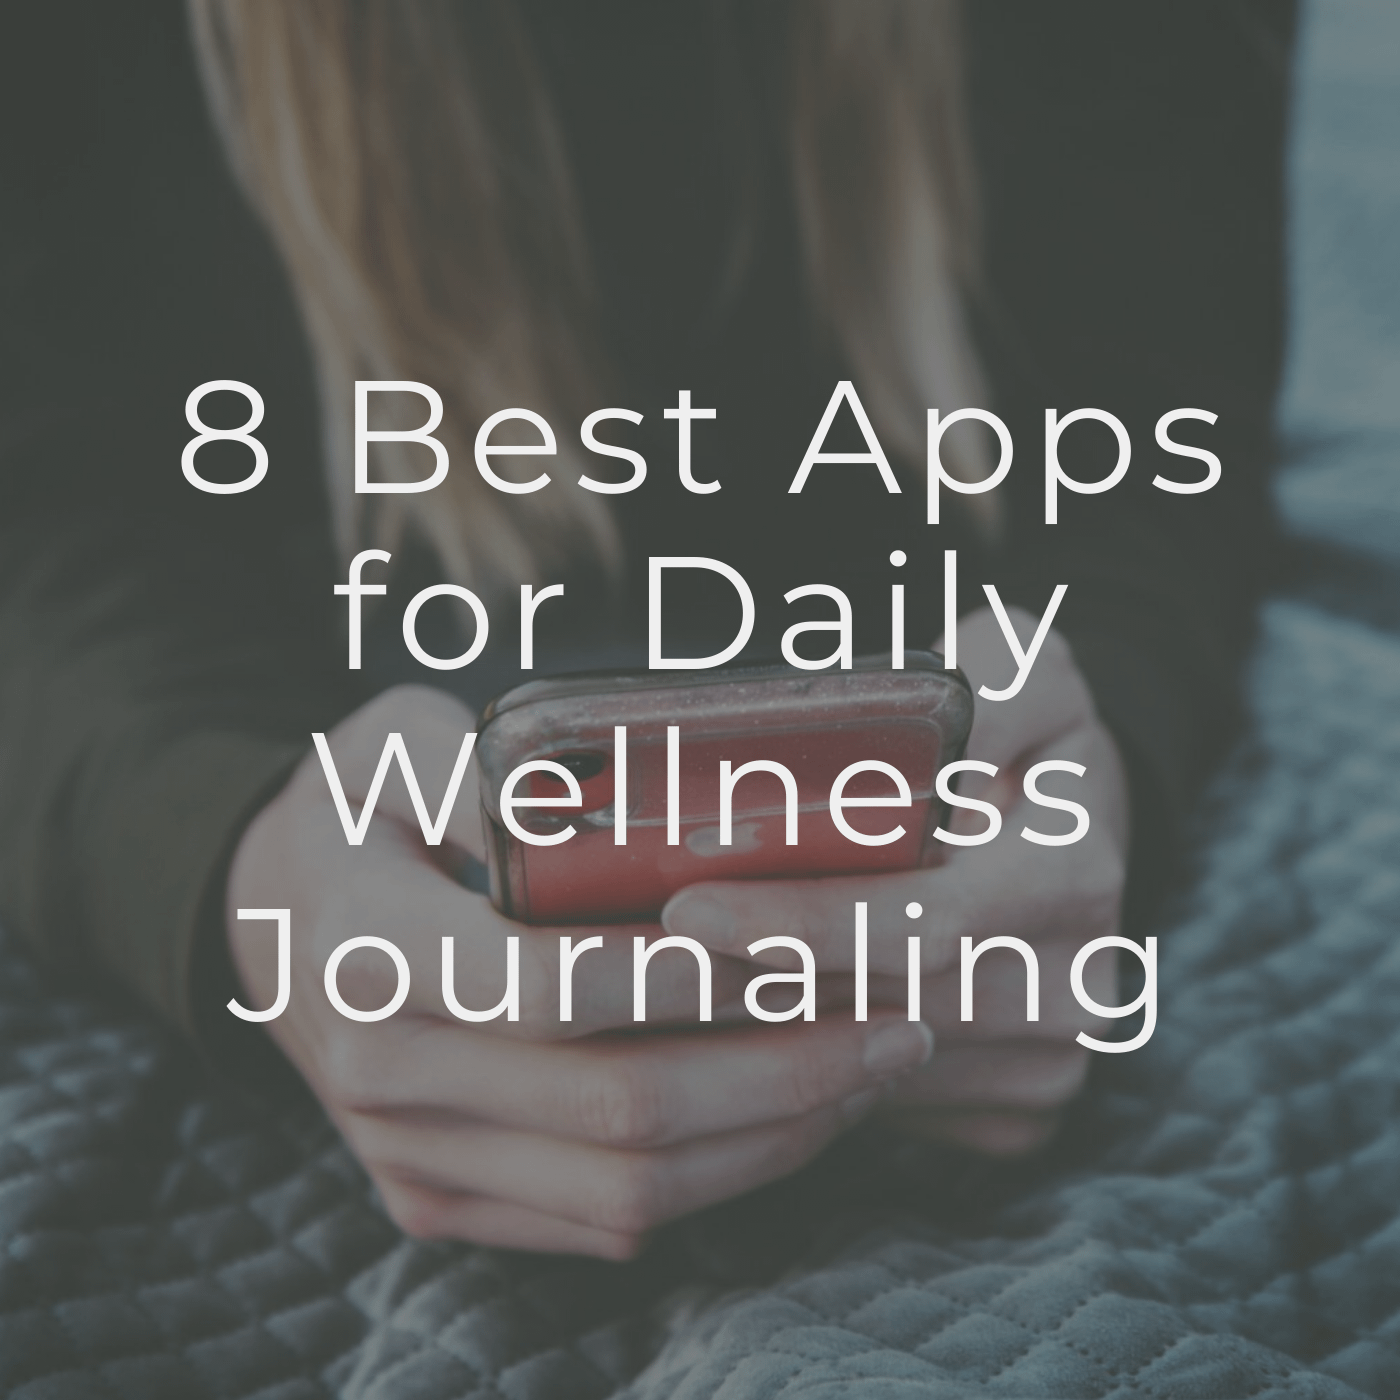 8 Best Apps for Daily Wellness Journaling in 2021